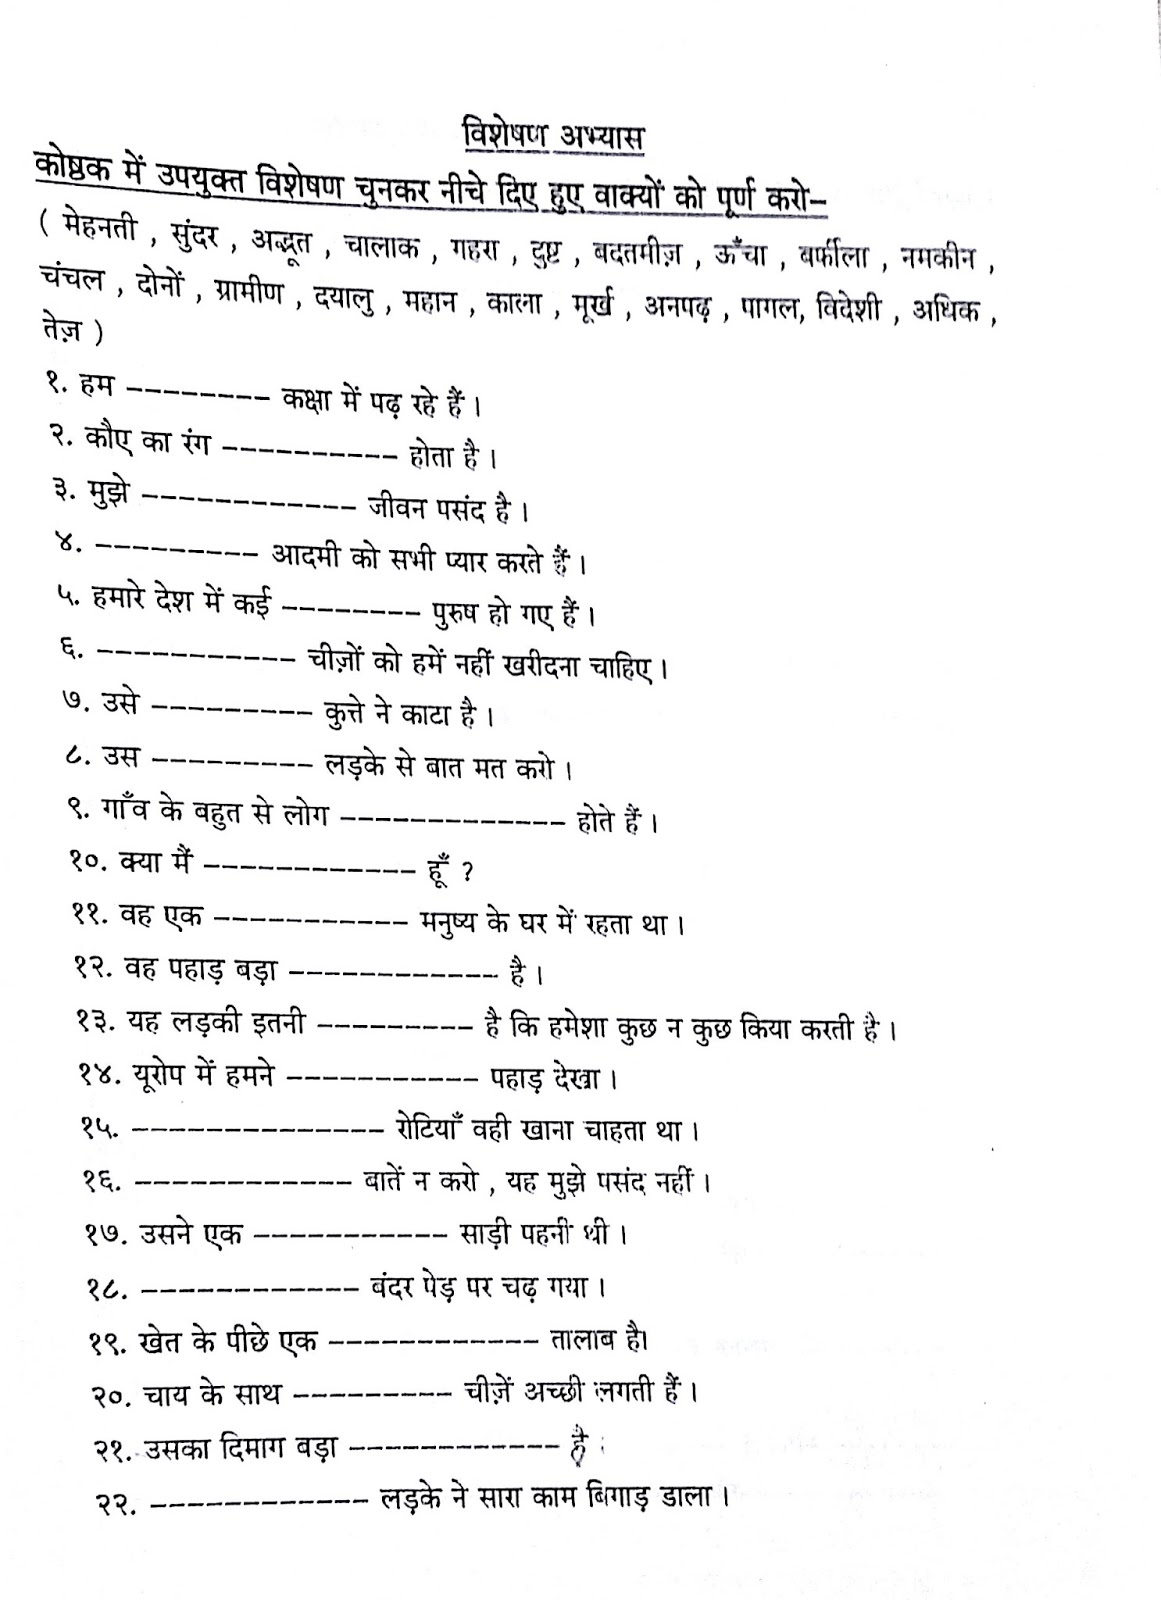 Worksheet Of Hindi For Class 5 | Printable Worksheets and ...